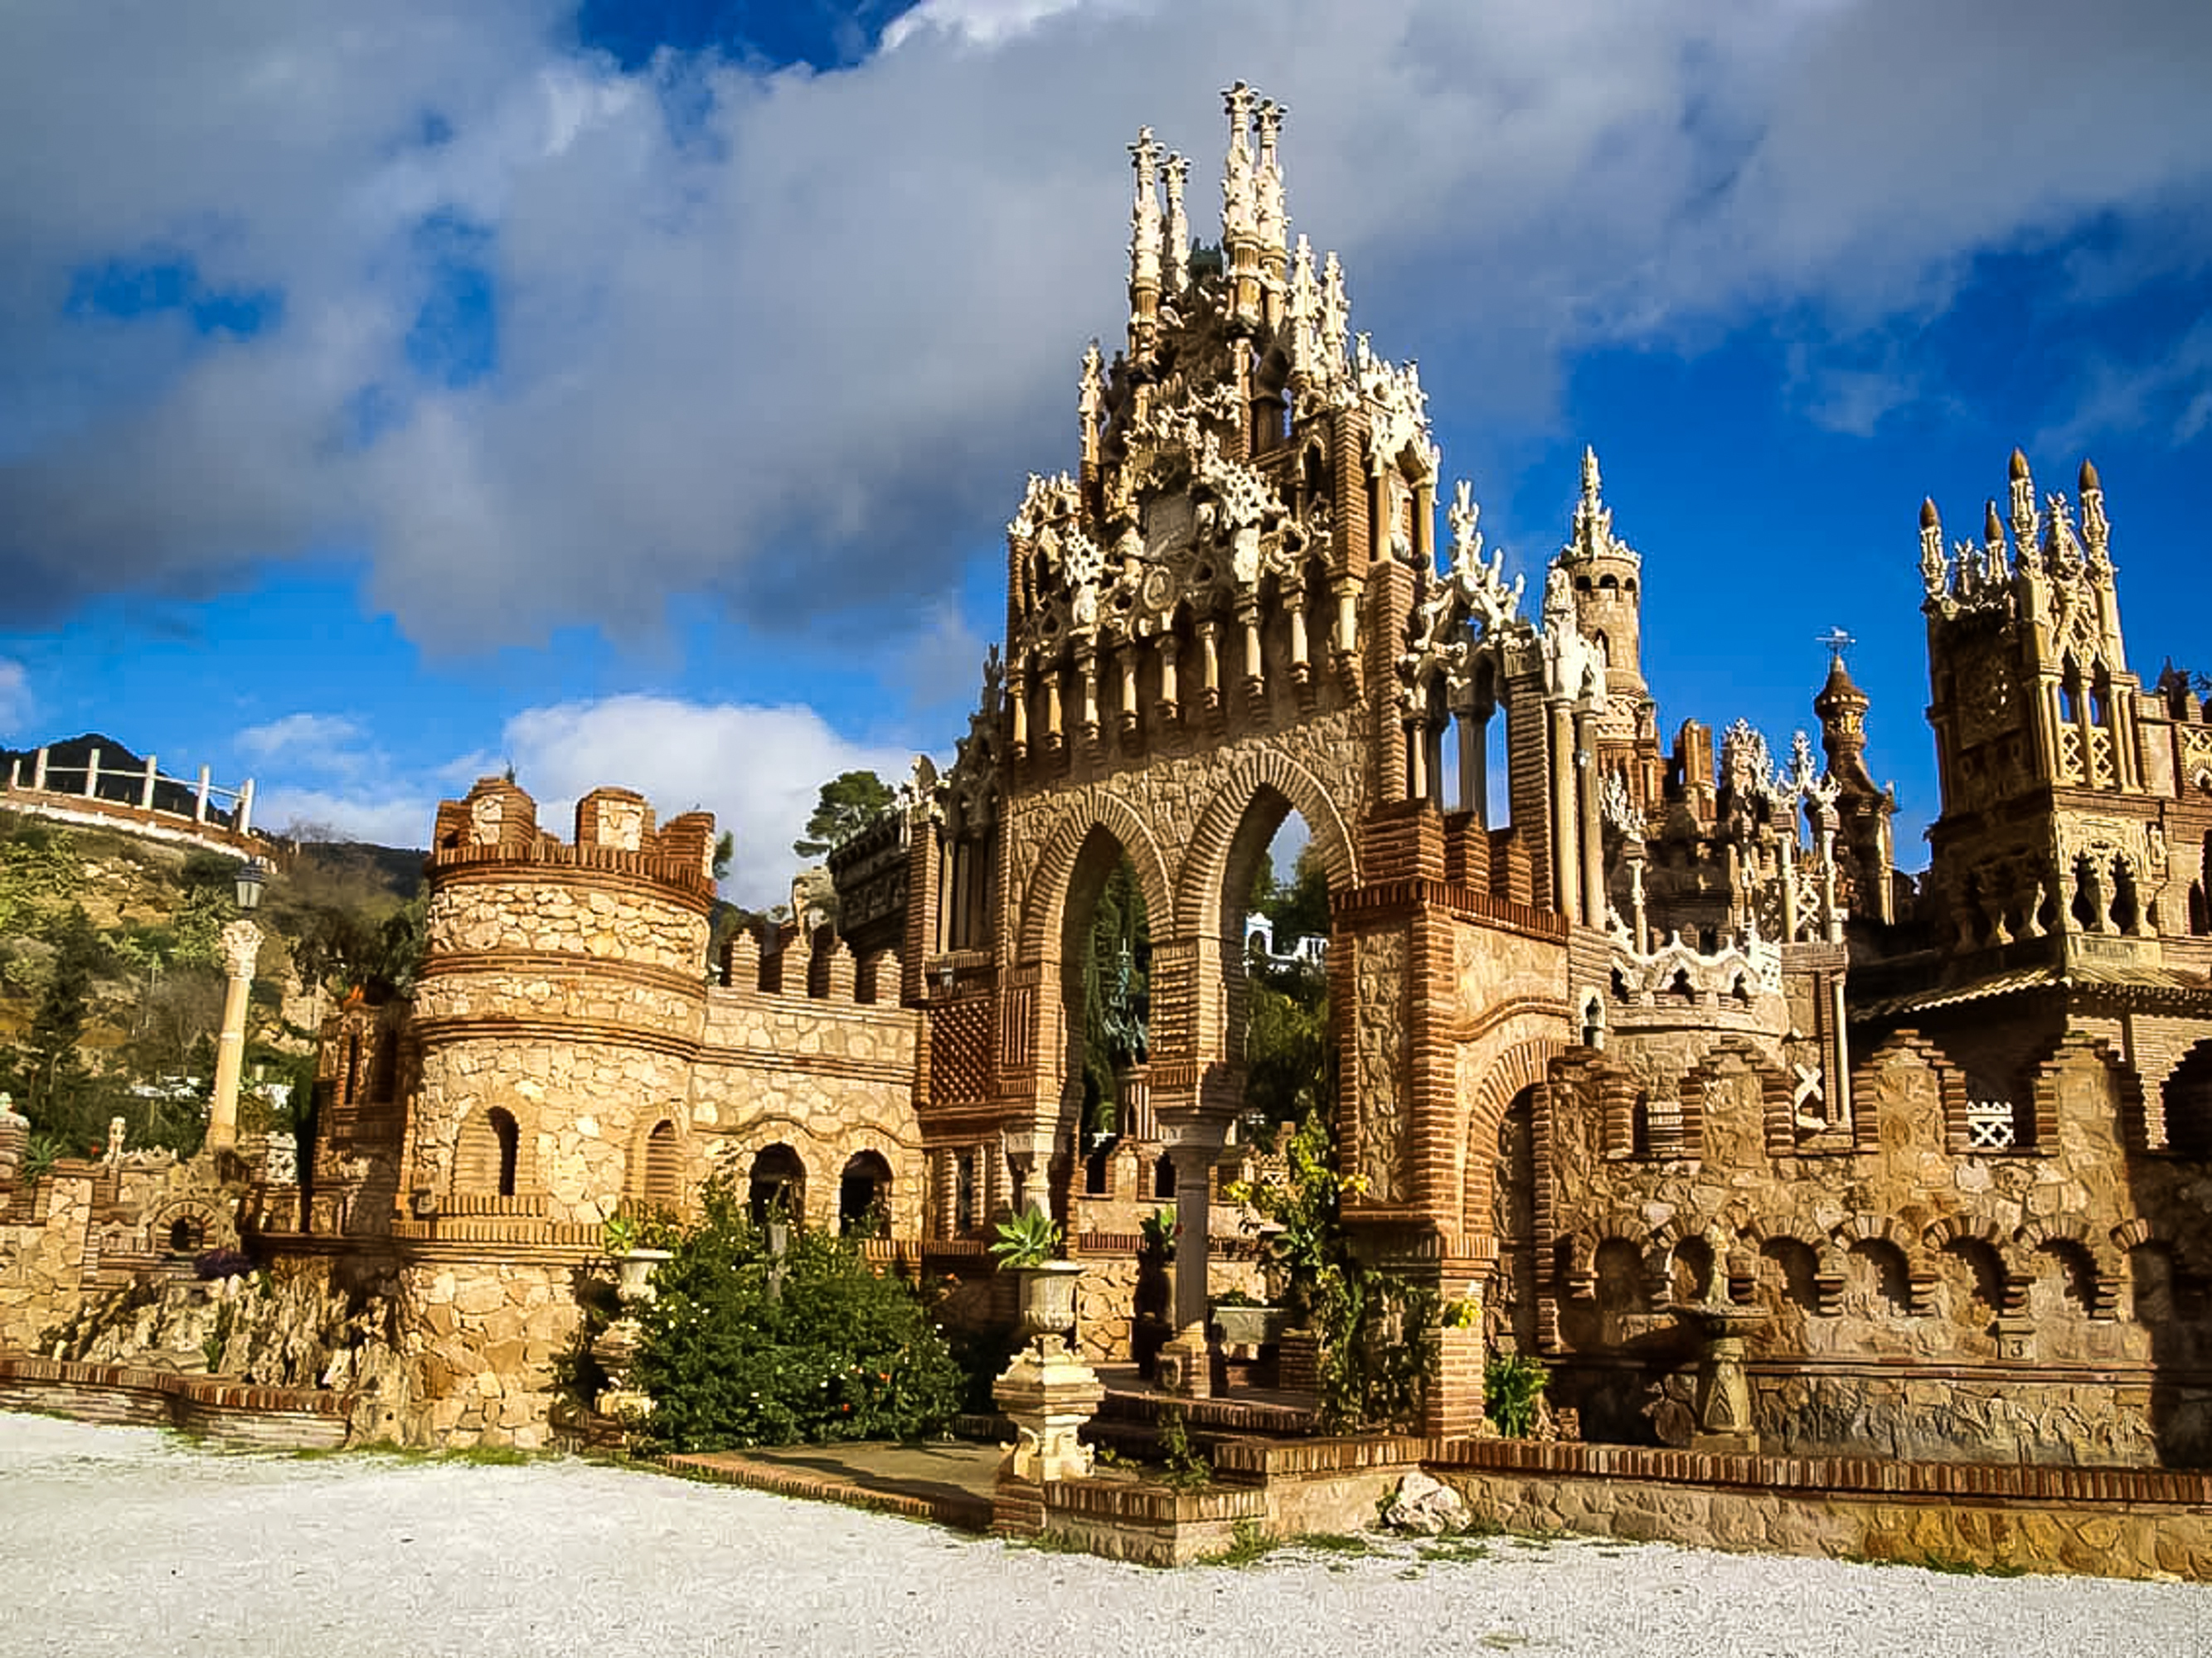 Pack your bags ASAP because you can now fly to Spain for under $350 round-trip